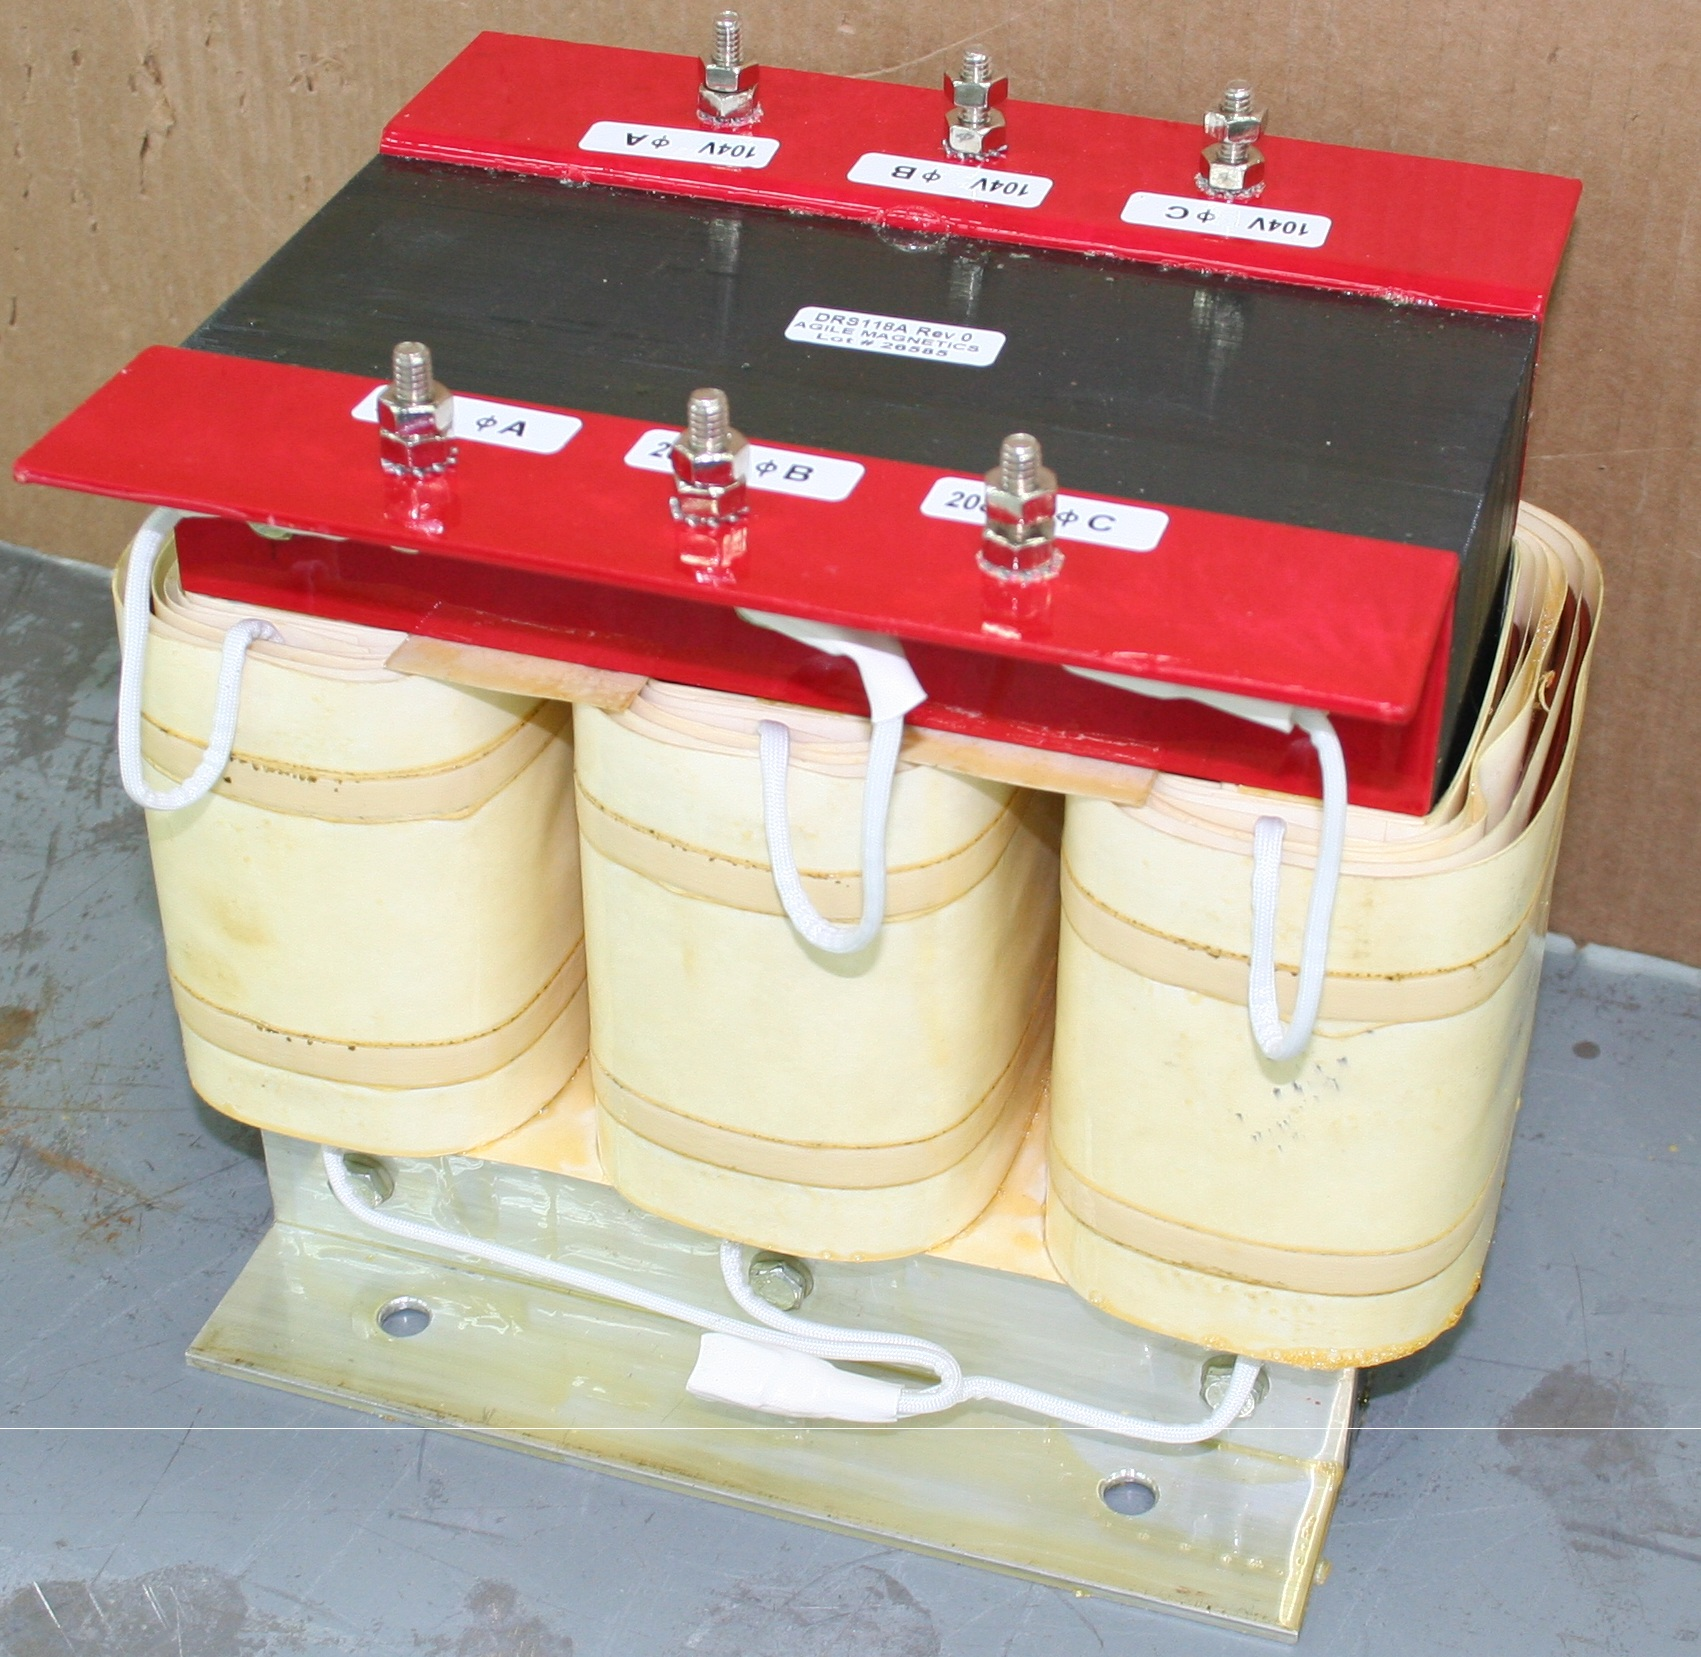 3 Phase Step-Up 208v To 480v Transformers on 350 kva transformer, 75 kva transformer, 300 kva transformer, 125 kva transformer, 115 kva transformer, 750 kva transformer, 30 kva transformer, 250 kva transformer, 20 kva transformer, single phase 15 kva transformer, 1500 kva transformer, 25 kva transformer, 10 kva transformer, 2000 kva transformer, 450 kva transformer, 1000 kva transformer, 50 kva transformer, 500 kva transformer, 1250 kva transformer, 3000 kva transformer,